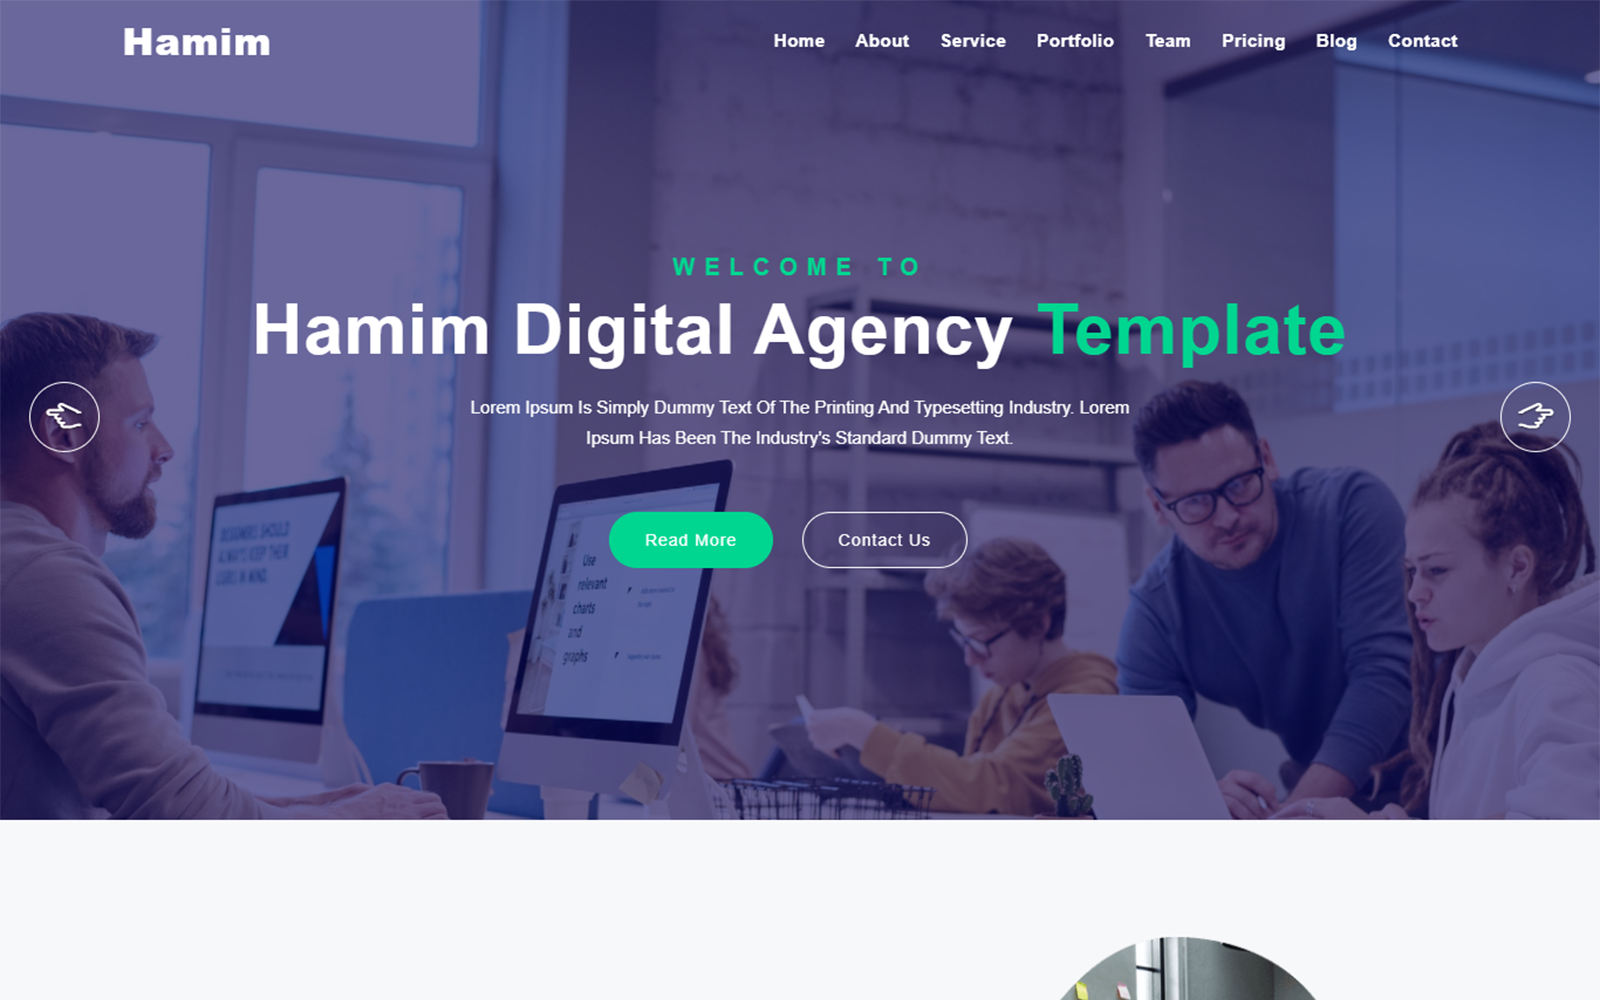 Hamim Digital Agency One Page Landing Page Template